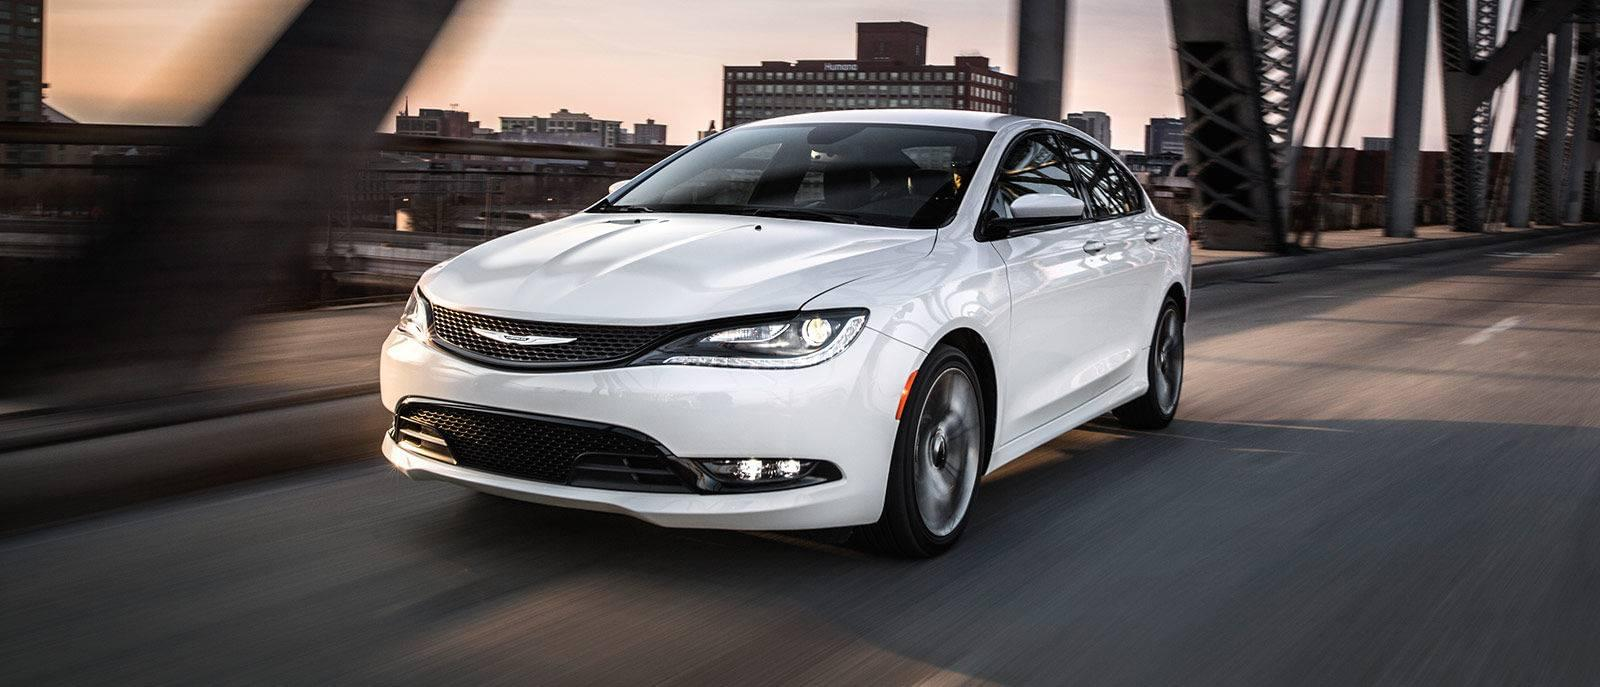 Chrysler 200: Operating Instructions — Radio Mode